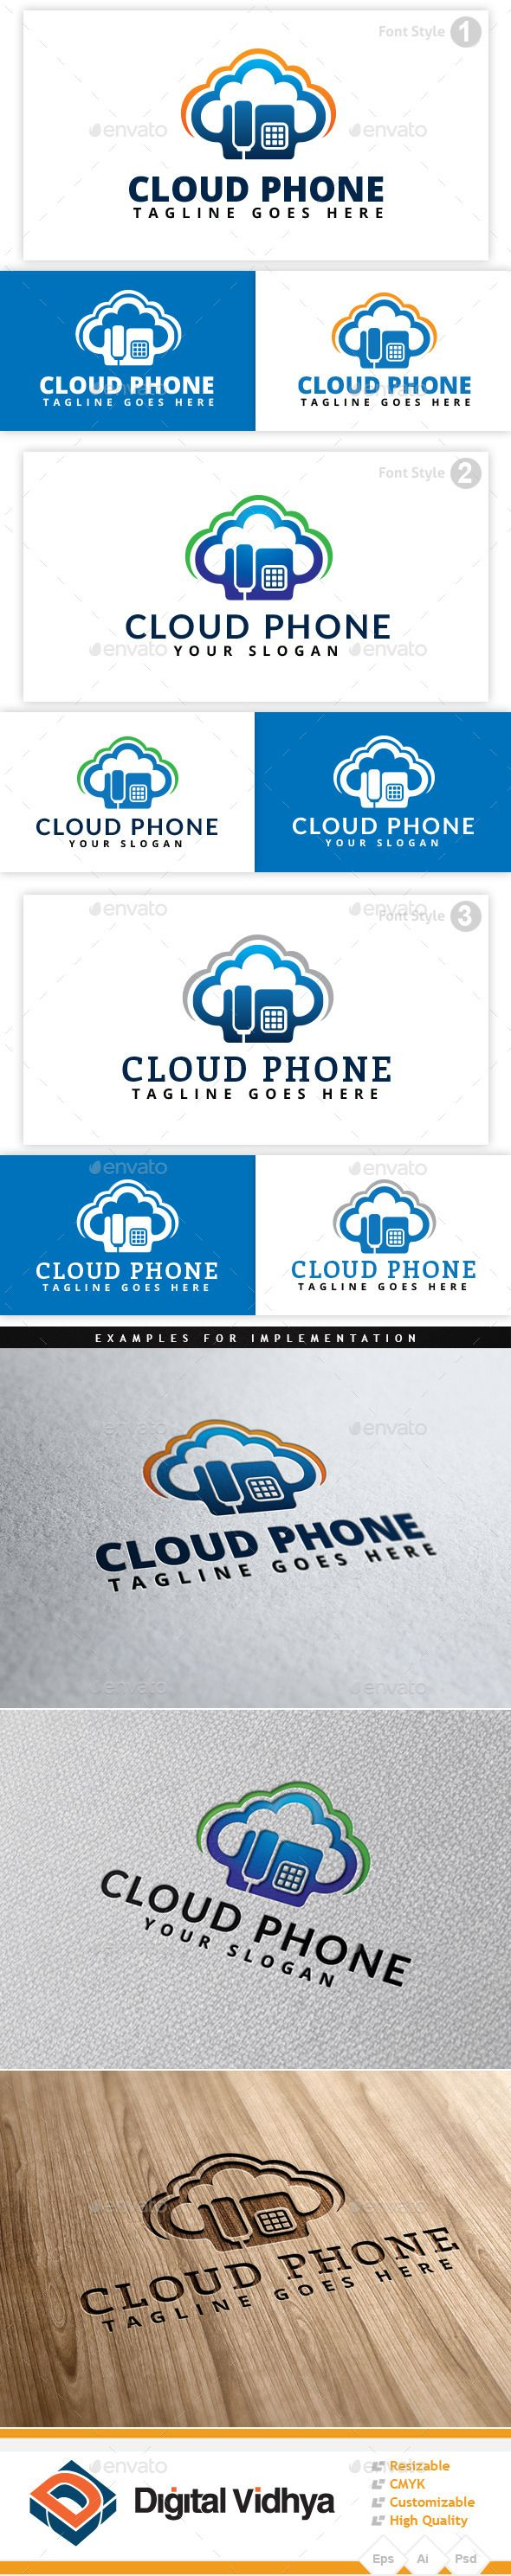 Cloud & Phone Logo — Photoshop PSD #blue #signals • Available here → https://graphicriver.net/item/cloud-phone-logo/8923055?ref=pxcr